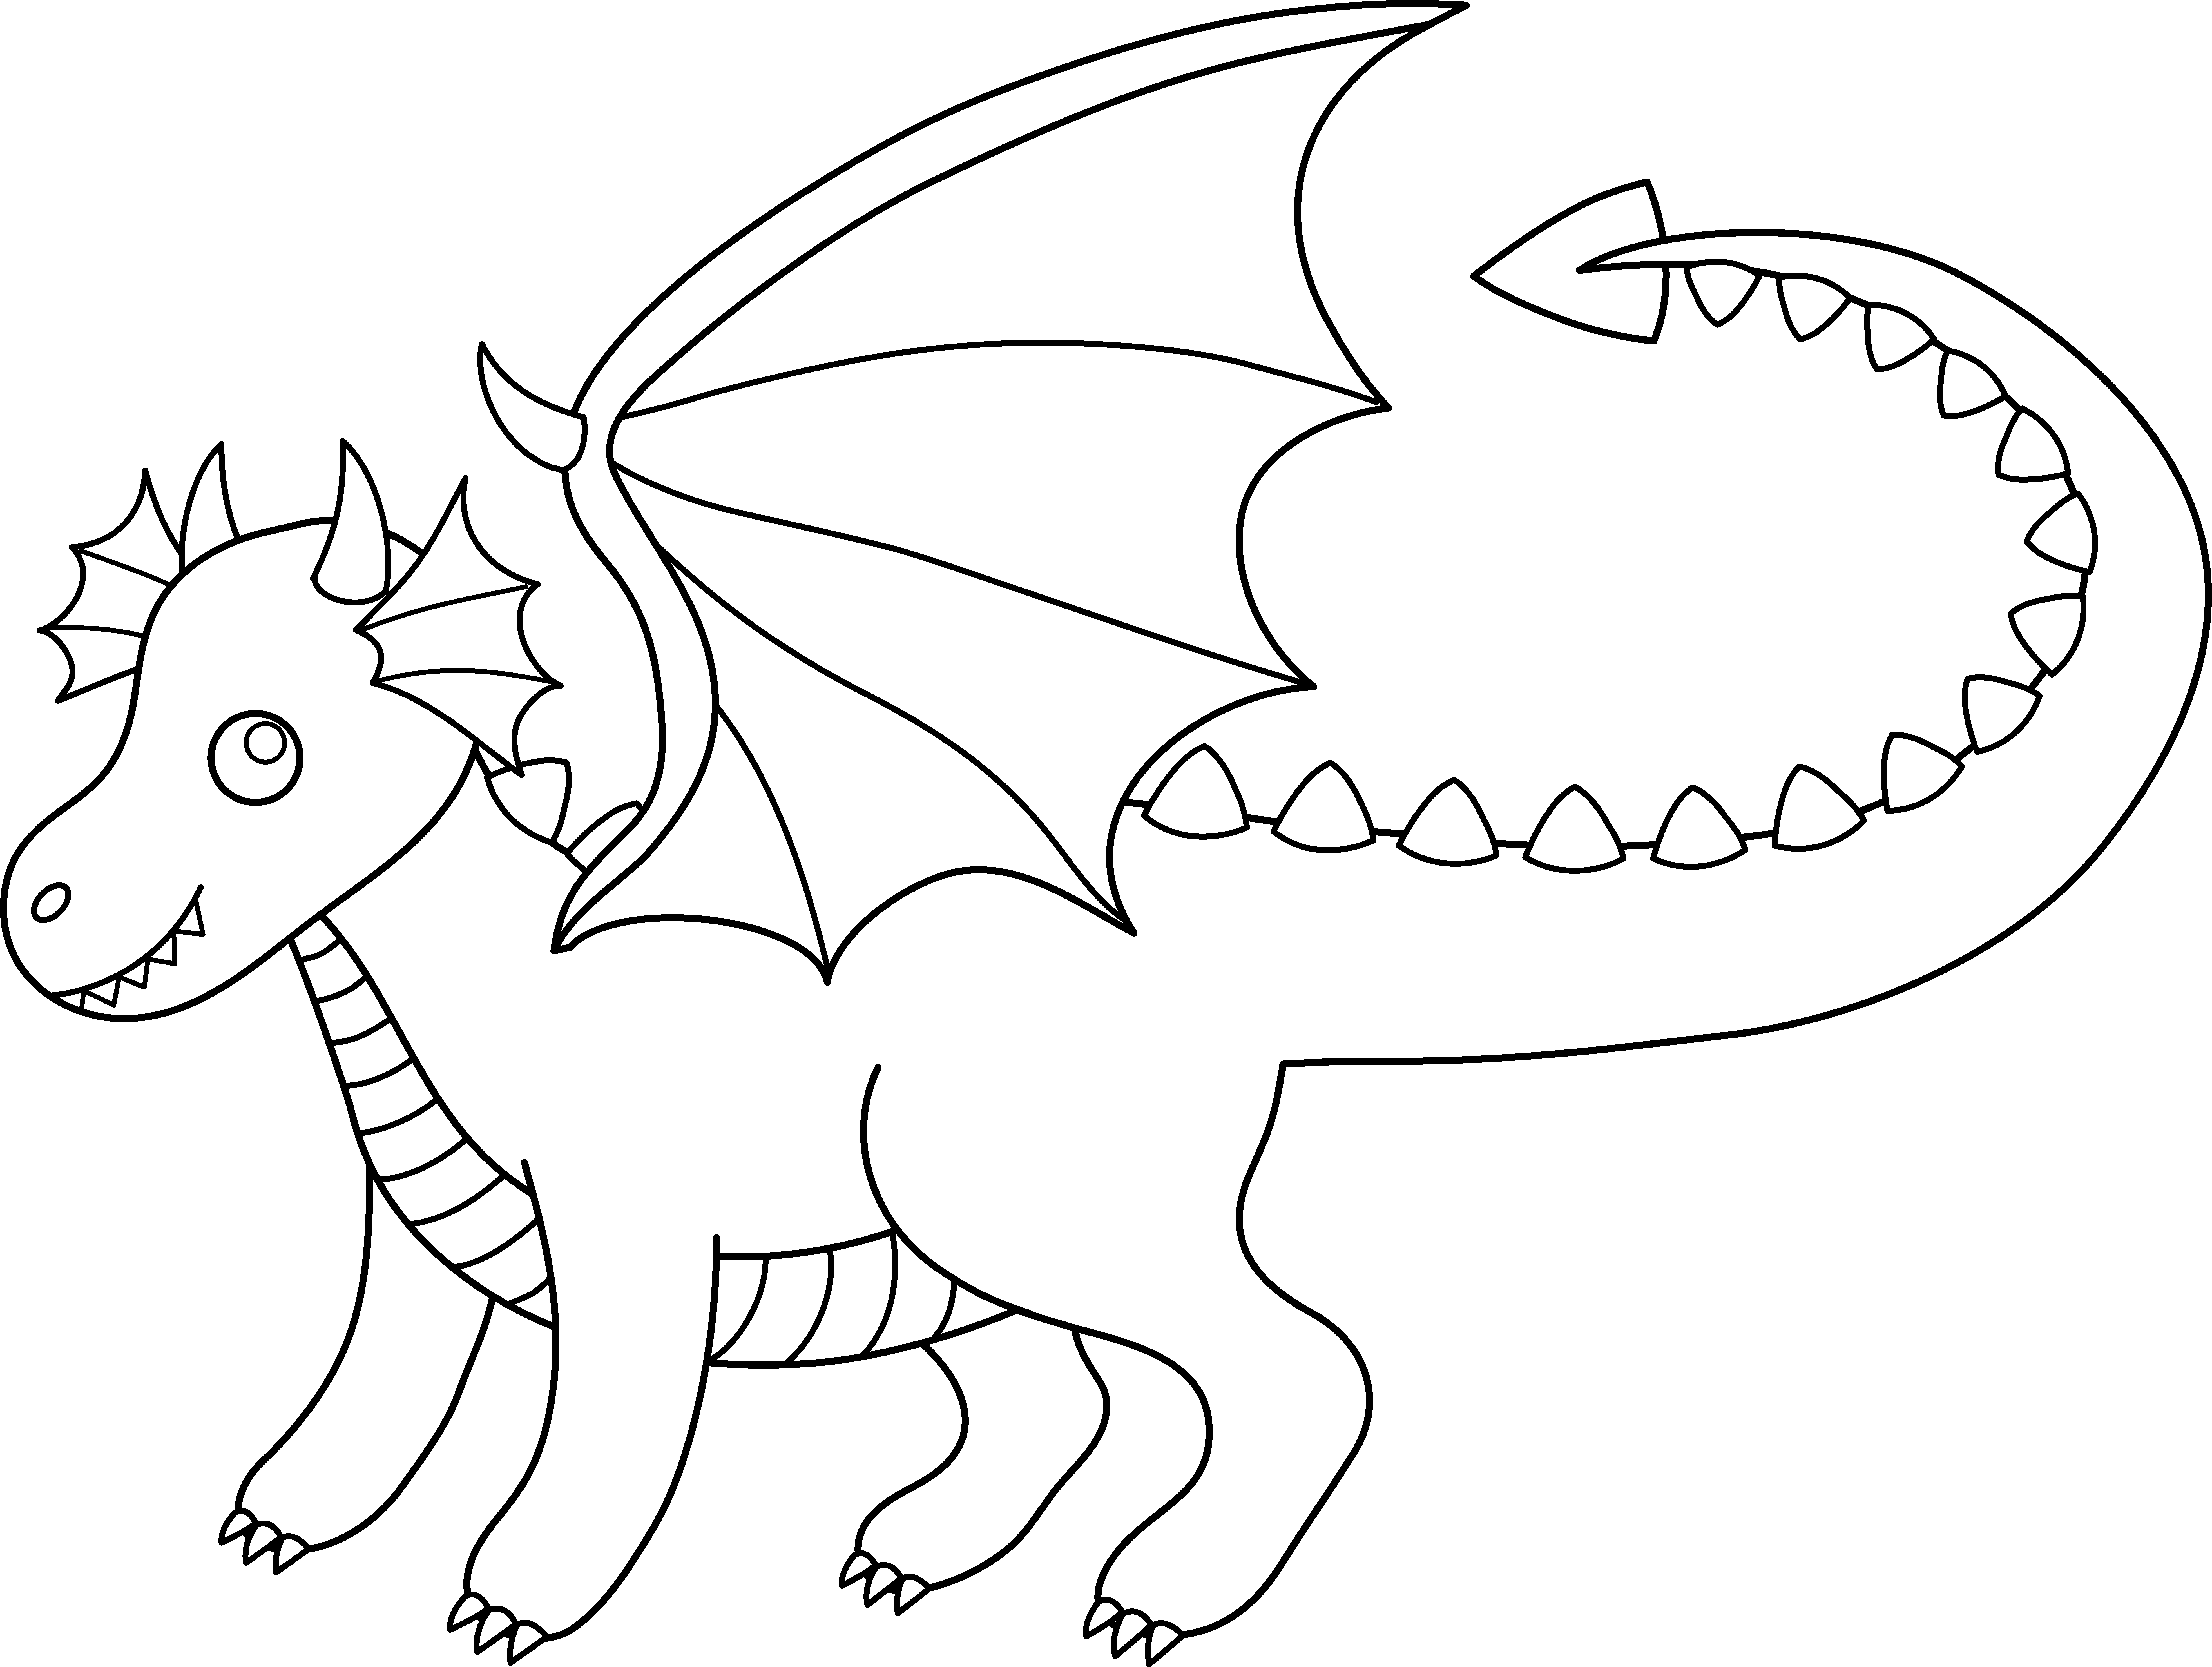 coloring pages of cute dragons cute dragons colouring pages dragon coloring page pages of dragons coloring cute